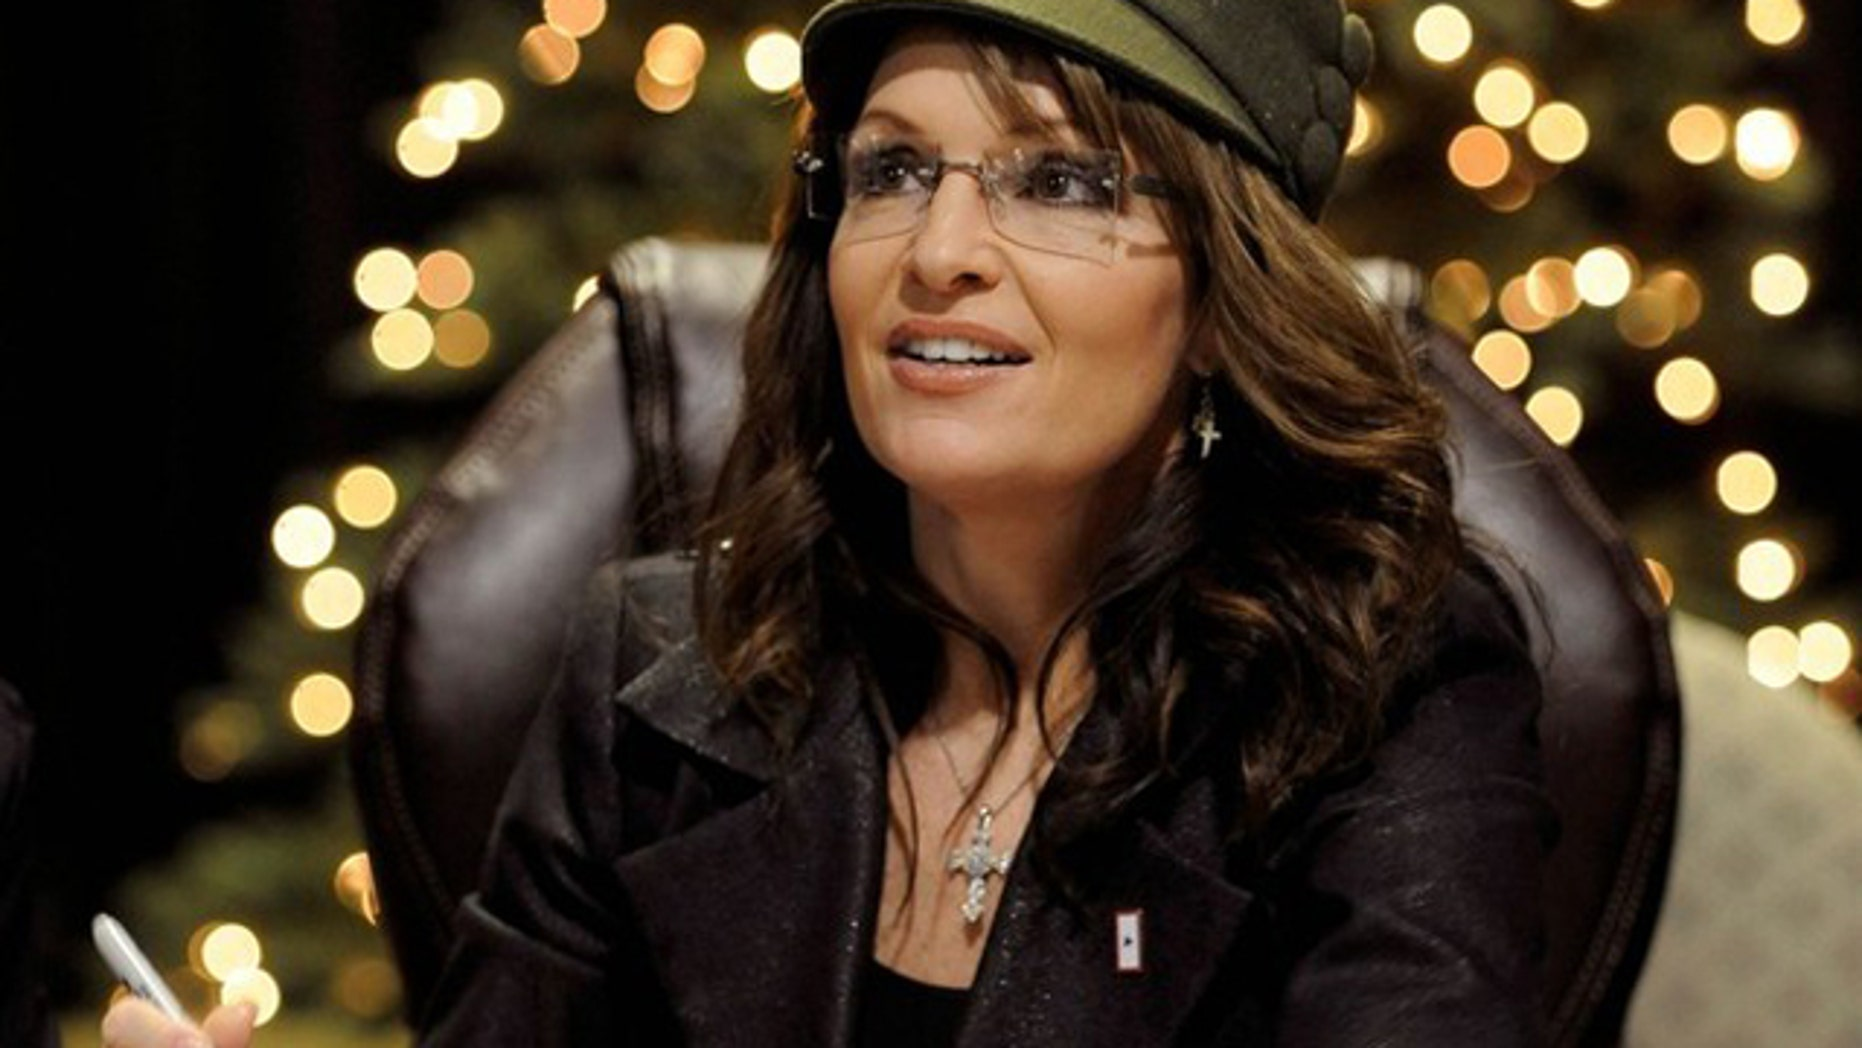 """Saturday: Former Alaska governor and 2008 Republican vice presidential nominee Sarah Palin signs her book """"Going Rogue"""" in front of a lit-up Christmas tree, at a shopping mall in Fairfax, Va.  (Reuters)"""